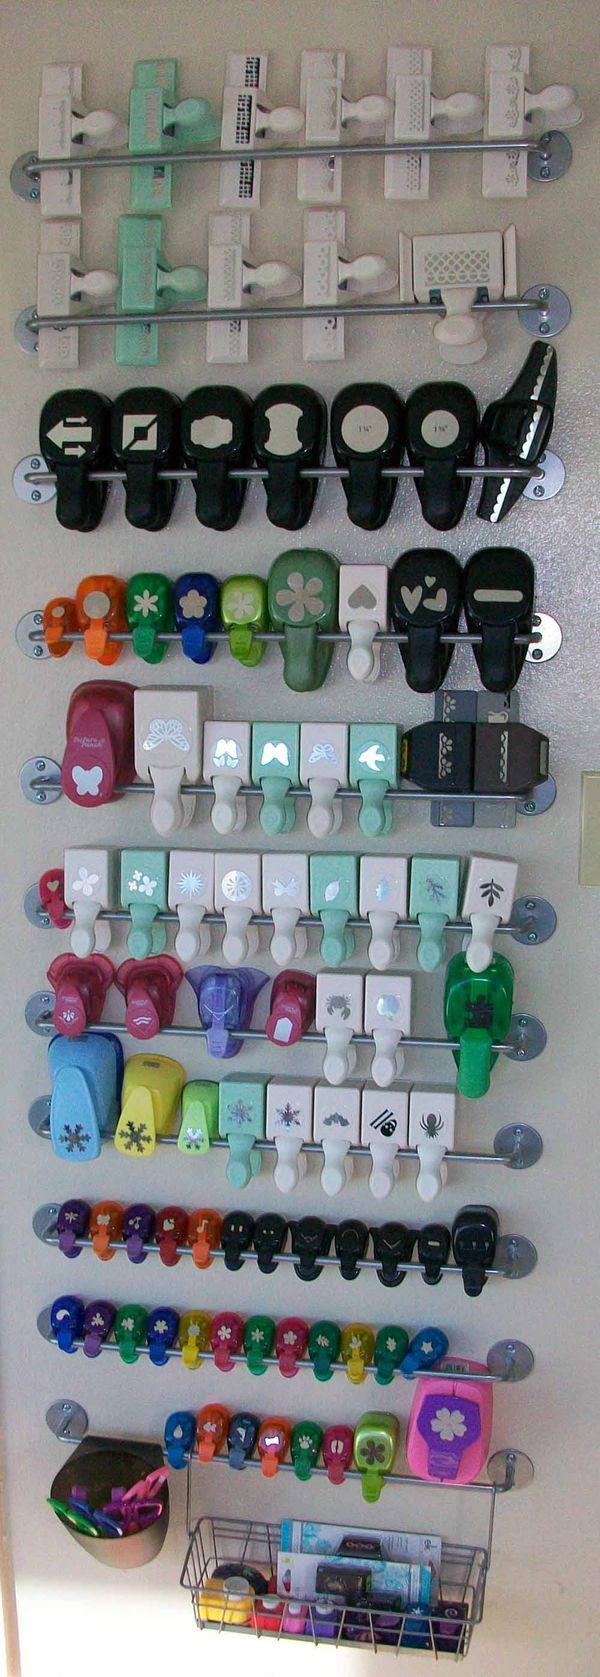 Smart way to store anything with handles.